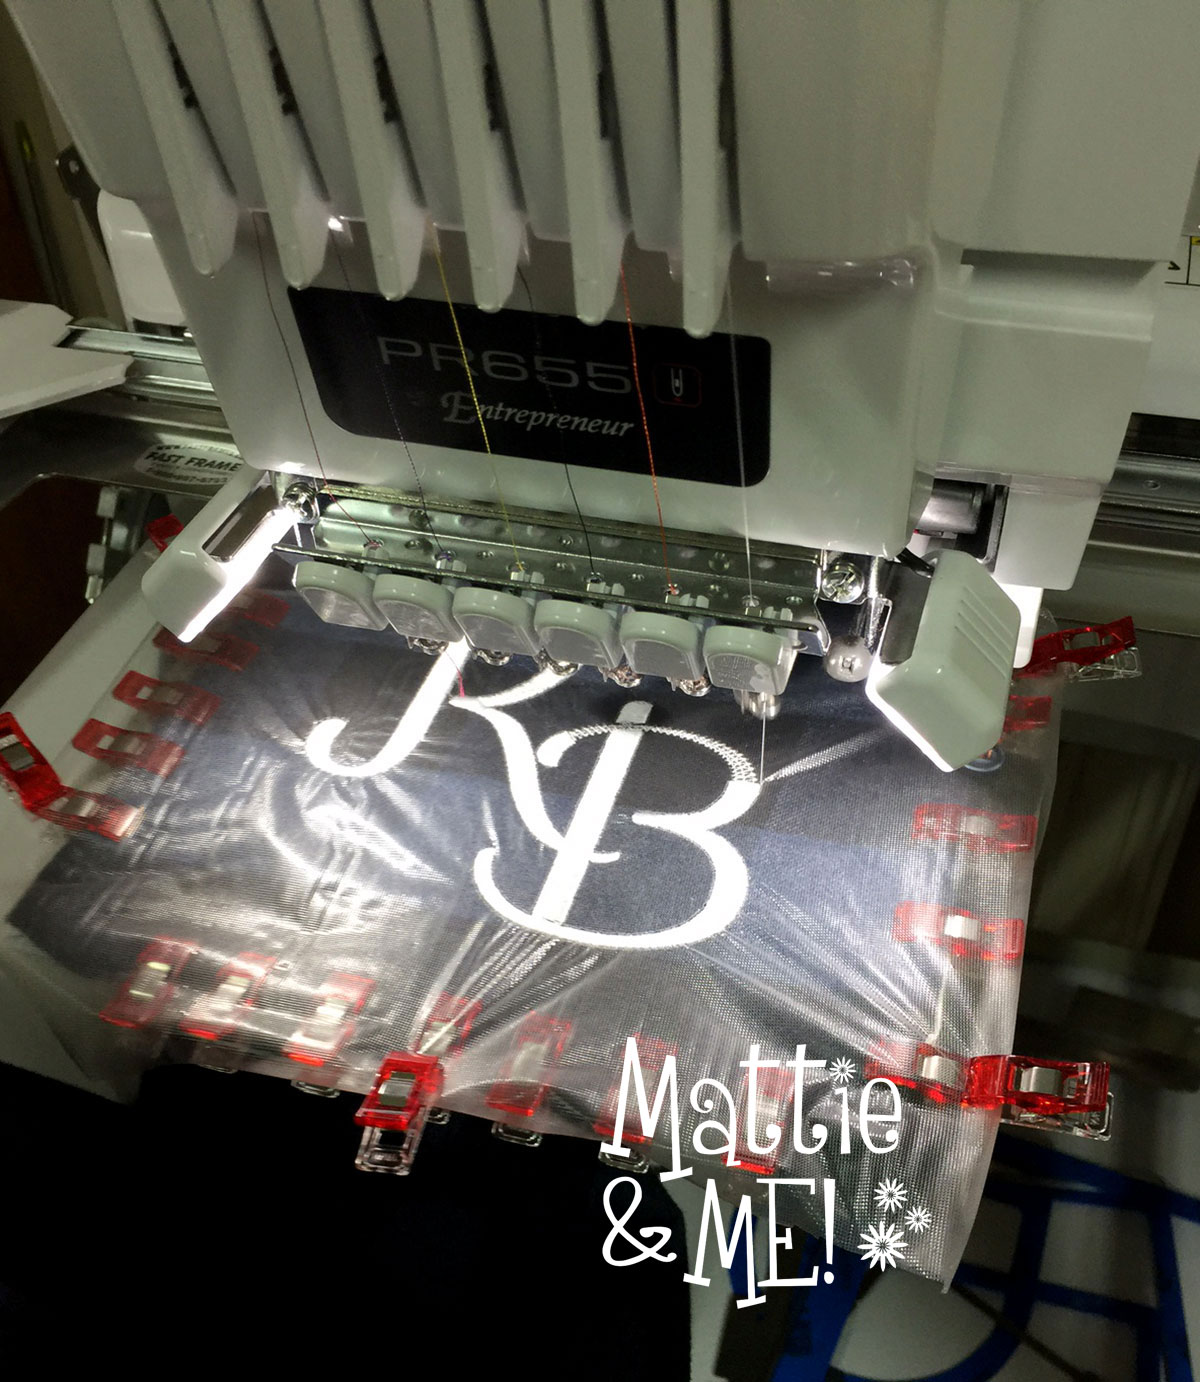 flannel shirt hip monogram on the machine